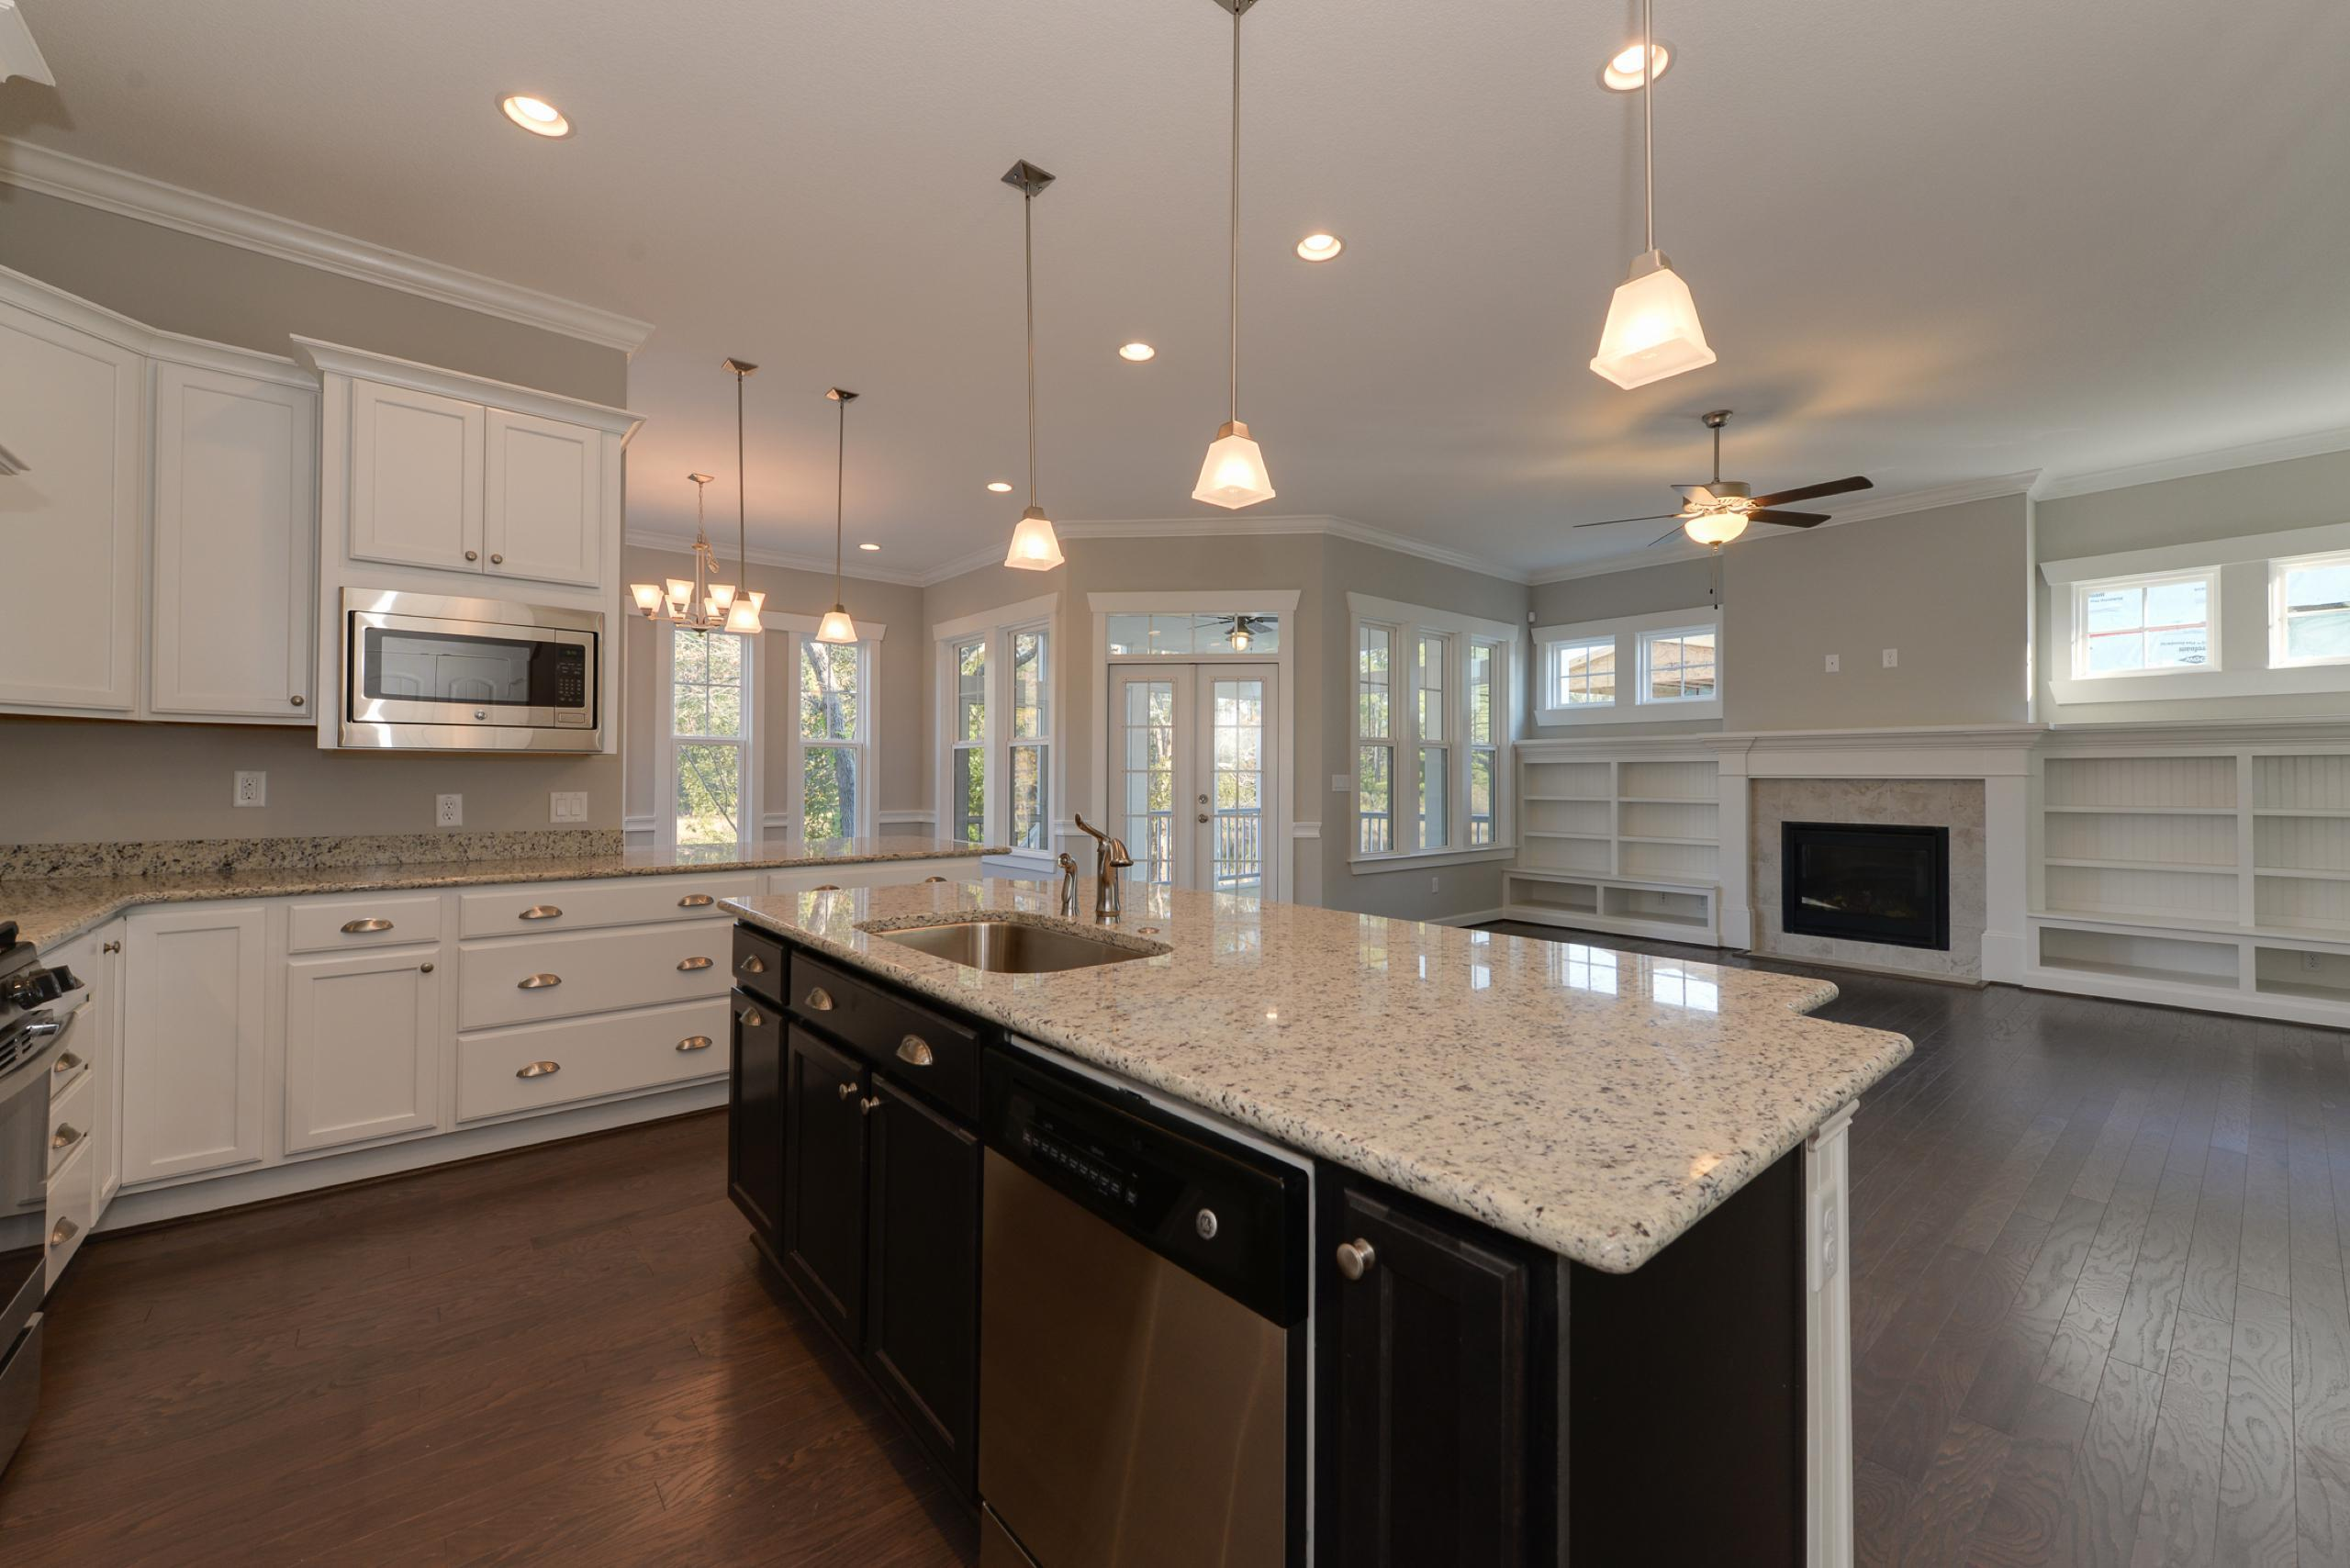 Kitchen featured in the Charlotte By Stephen Alexander Homes in Outer Banks, NC